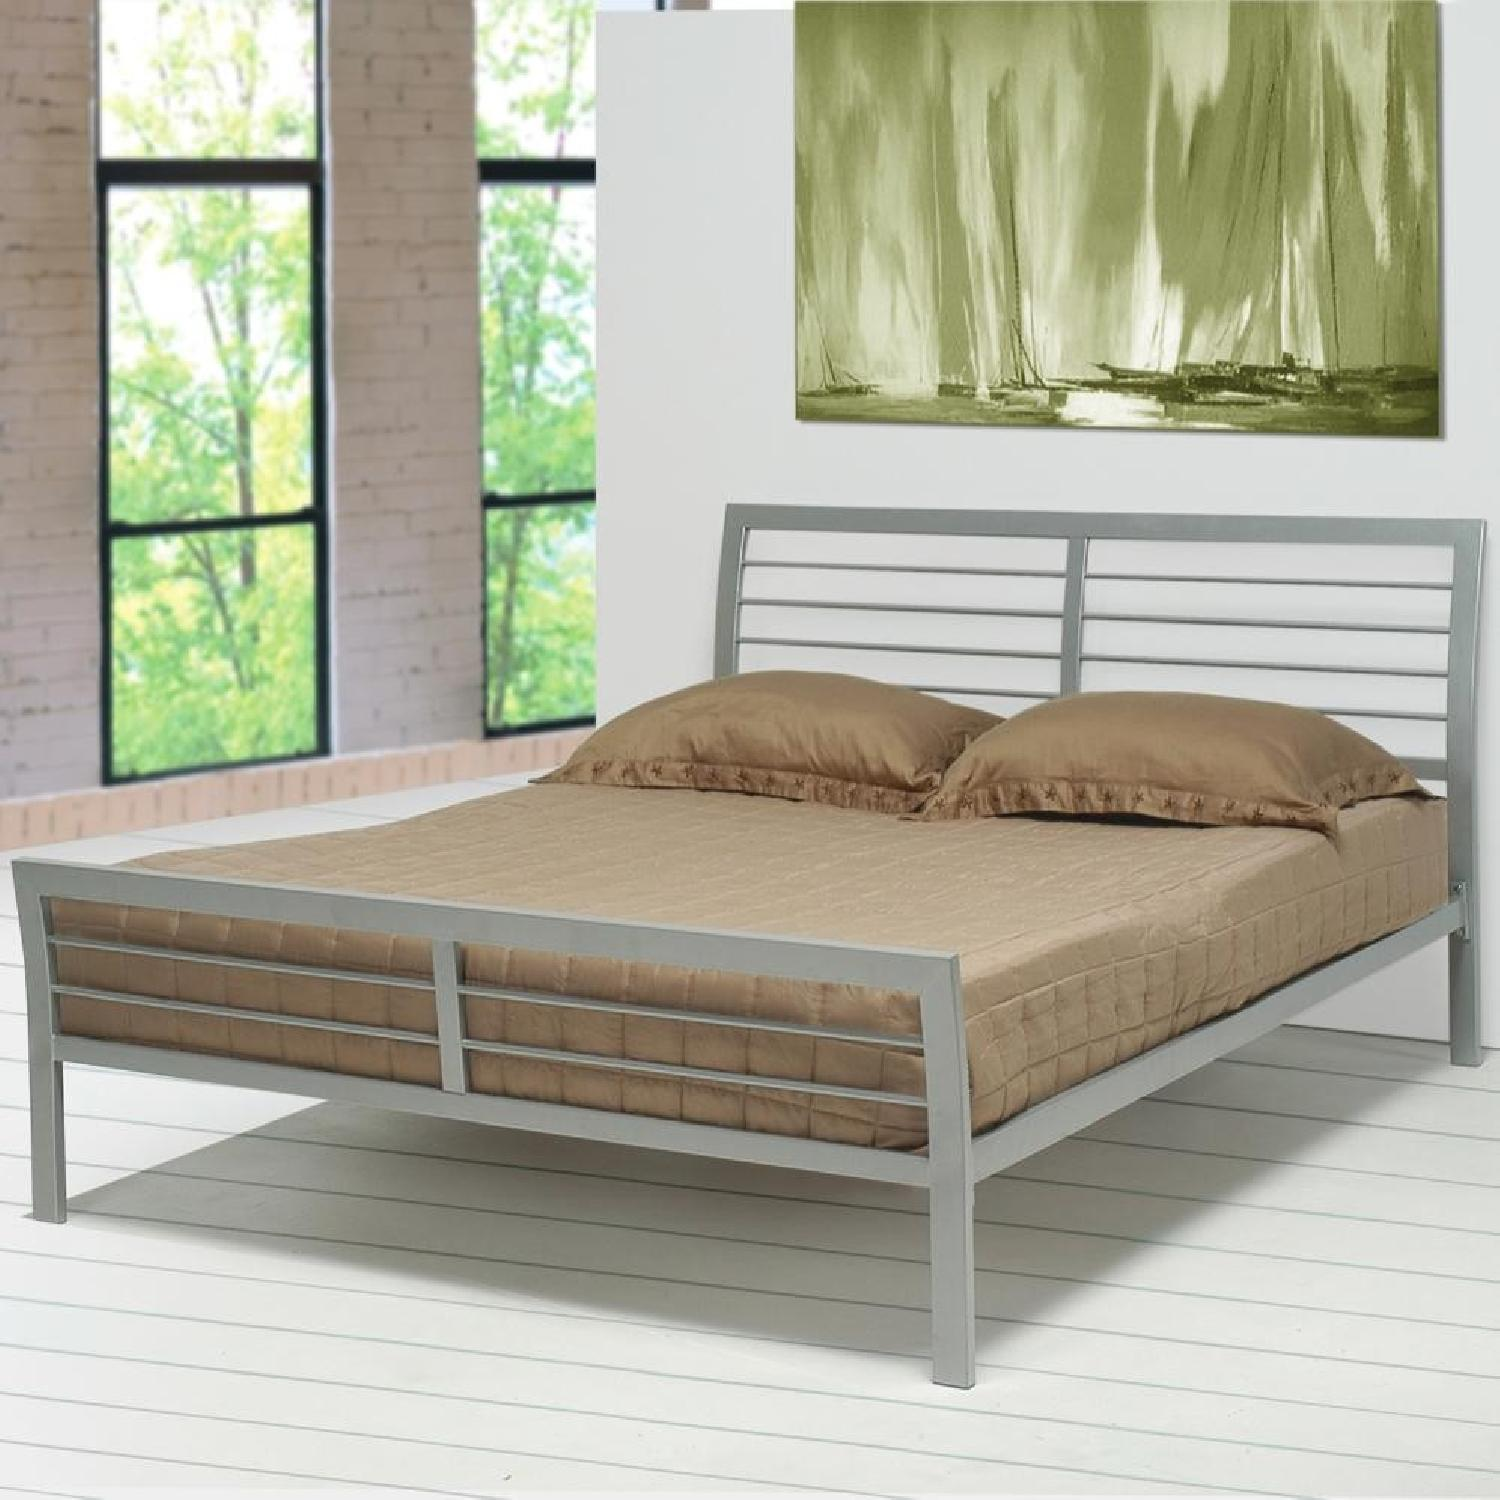 Modern Queen Size Metal Platform Bed in Silver Finish - image-2